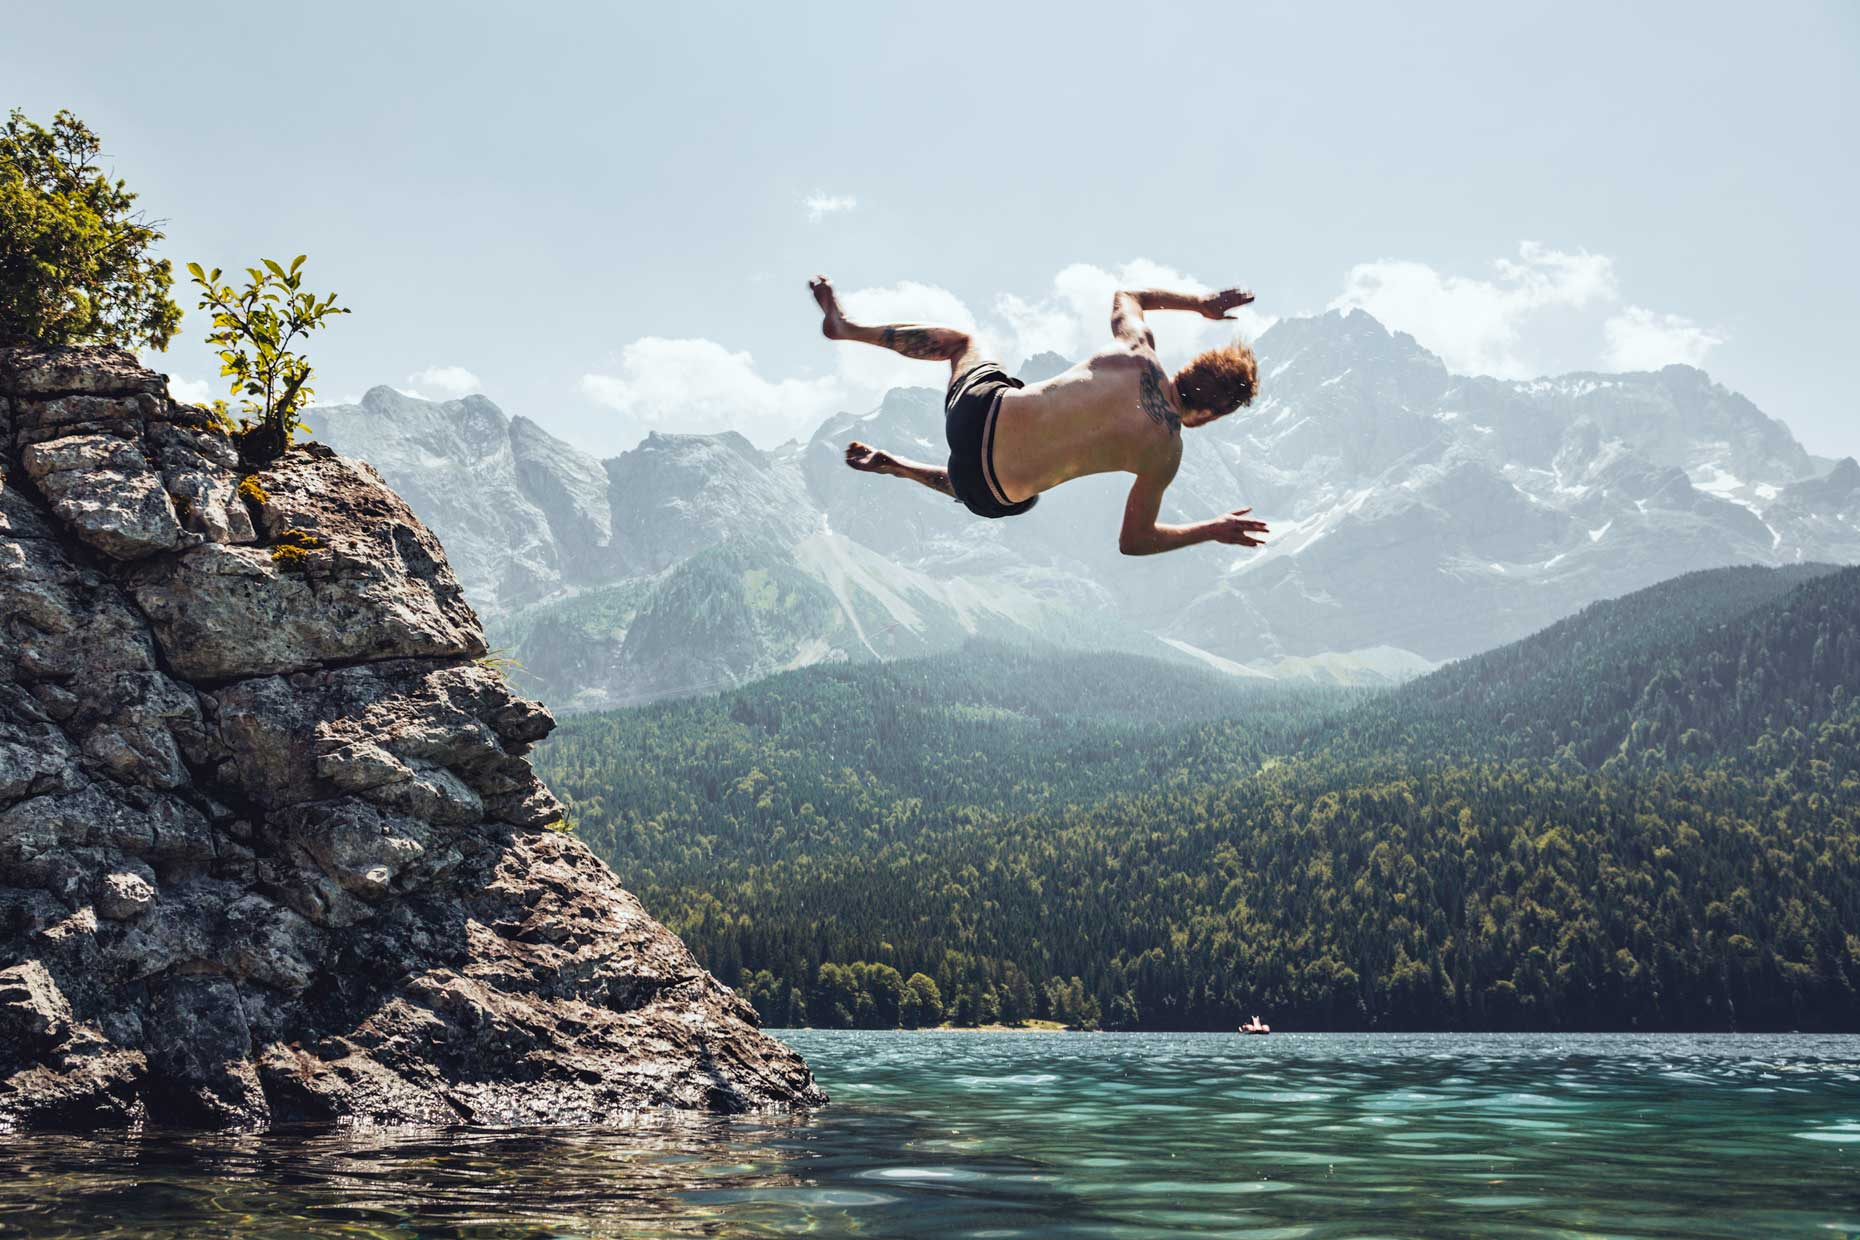 stiphout_jump-eibsee-79